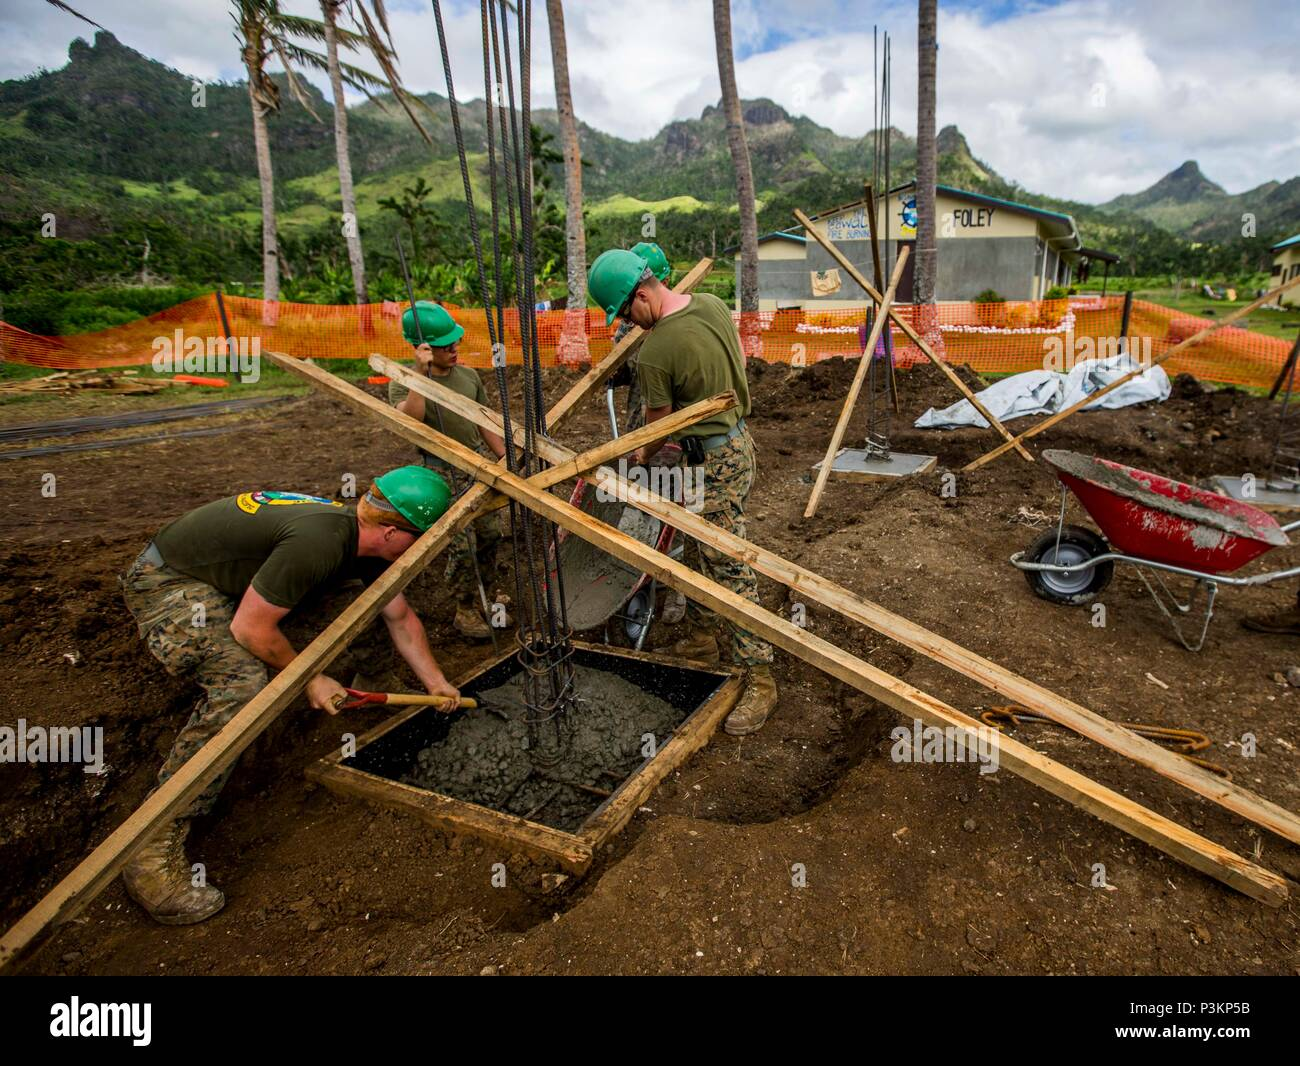 U.S. Marines and sailors with Task Force Koa Moana 16.2, conduct vertical construction training at St. John's College, Ovalau, Fiji, July 4, 2016.  Marines and Sailors with the task force will share engineering skills with Fijians to strengthen mil-to-mil relationships and interoperability. (U.S. Marine Corps imagery by MCIPAC Combat Camera Lance Cpl. Jesus McCloud/ Released) - Stock Image